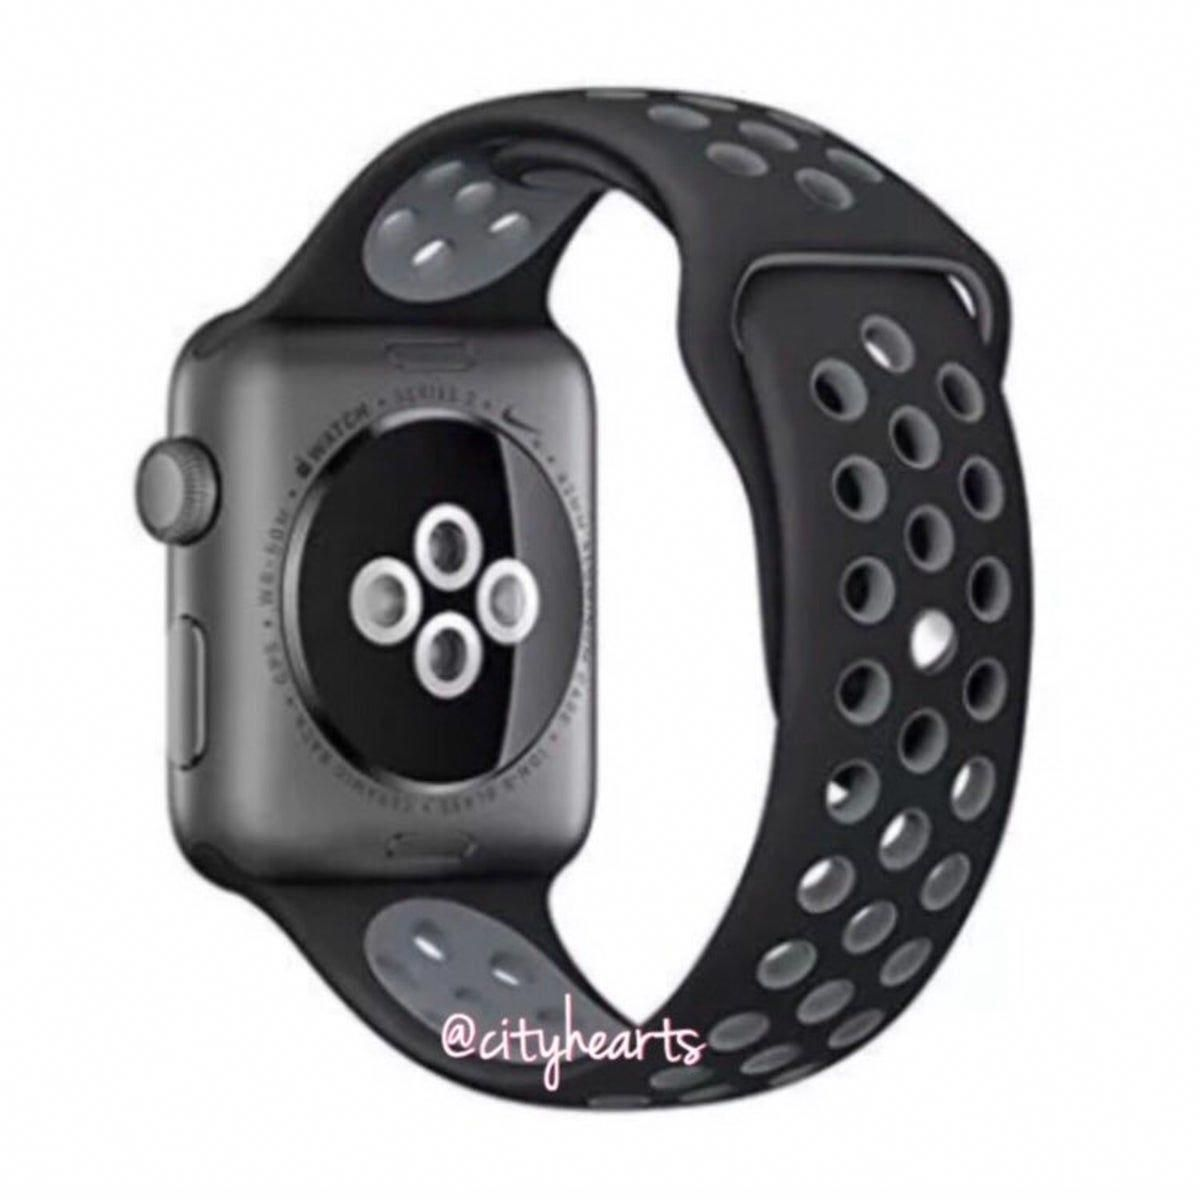 42/44 mm Black & Grey Apple Watch Band applewatches